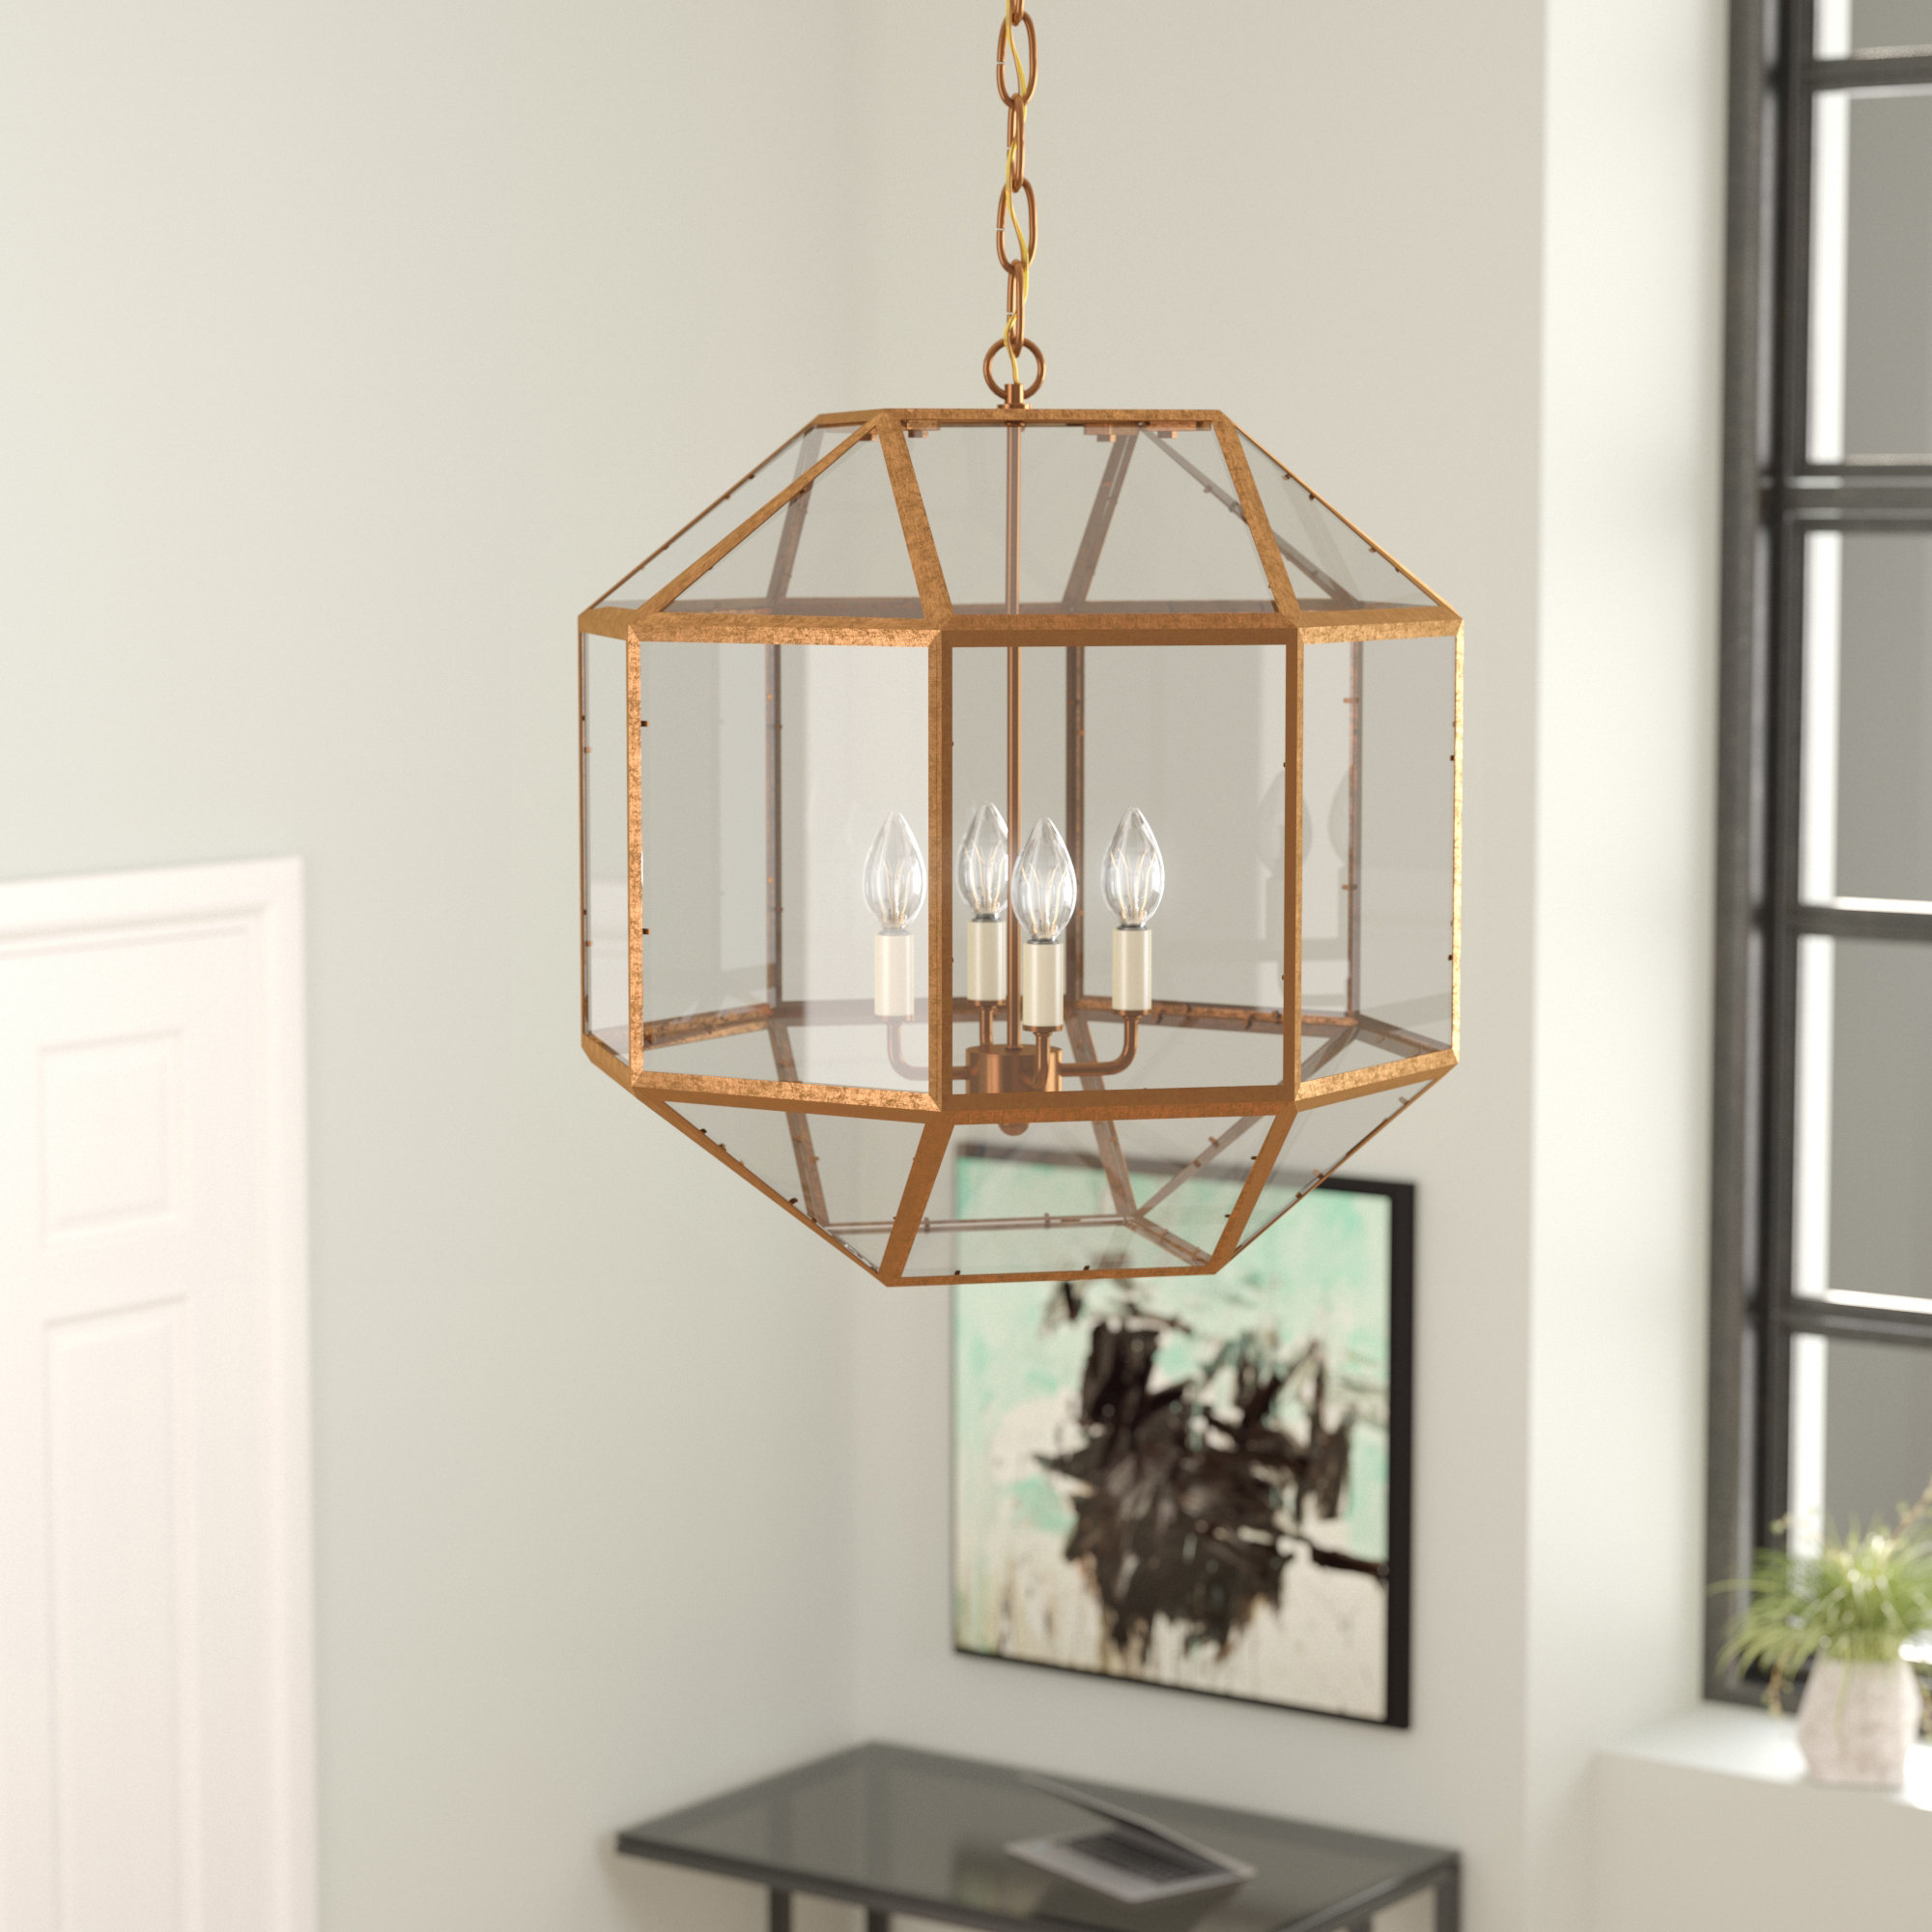 [%Geometric Chandeliers Sale – Up To 65% Off Until September In Best And Newest Tabit 5 Light Geometric Chandeliers|Tabit 5 Light Geometric Chandeliers Inside Recent Geometric Chandeliers Sale – Up To 65% Off Until September|Newest Tabit 5 Light Geometric Chandeliers Inside Geometric Chandeliers Sale – Up To 65% Off Until September|2019 Geometric Chandeliers Sale – Up To 65% Off Until September Within Tabit 5 Light Geometric Chandeliers%] (View 1 of 20)